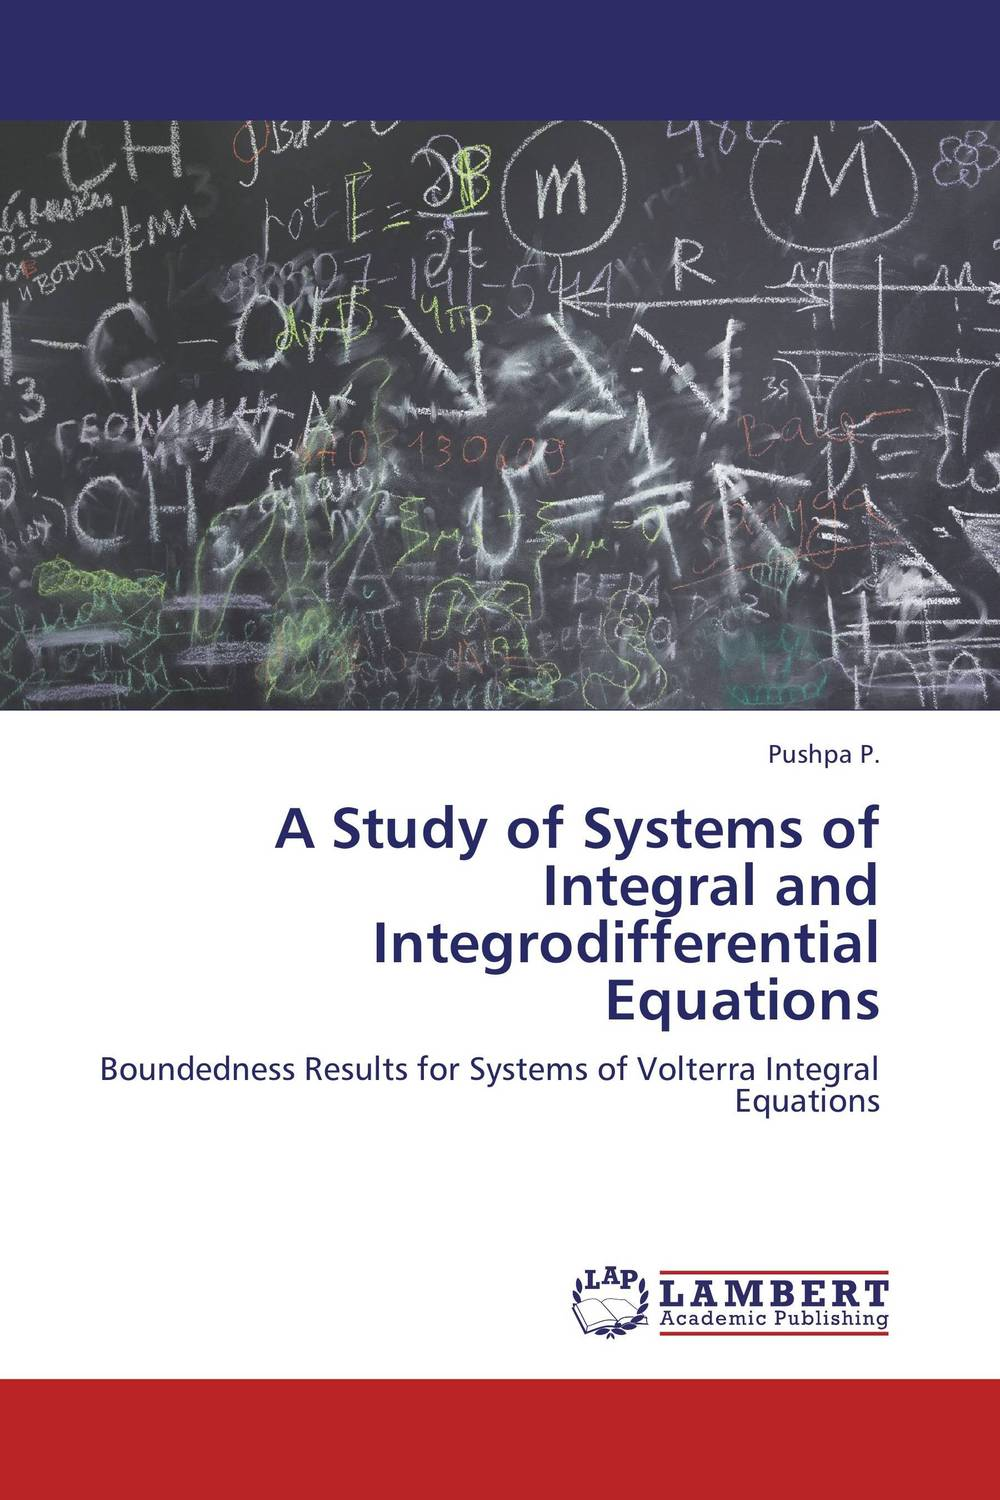 A Study of Systems of Integral and Integrodifferential Equations a study of the religio political thought of abdurrahman wahid